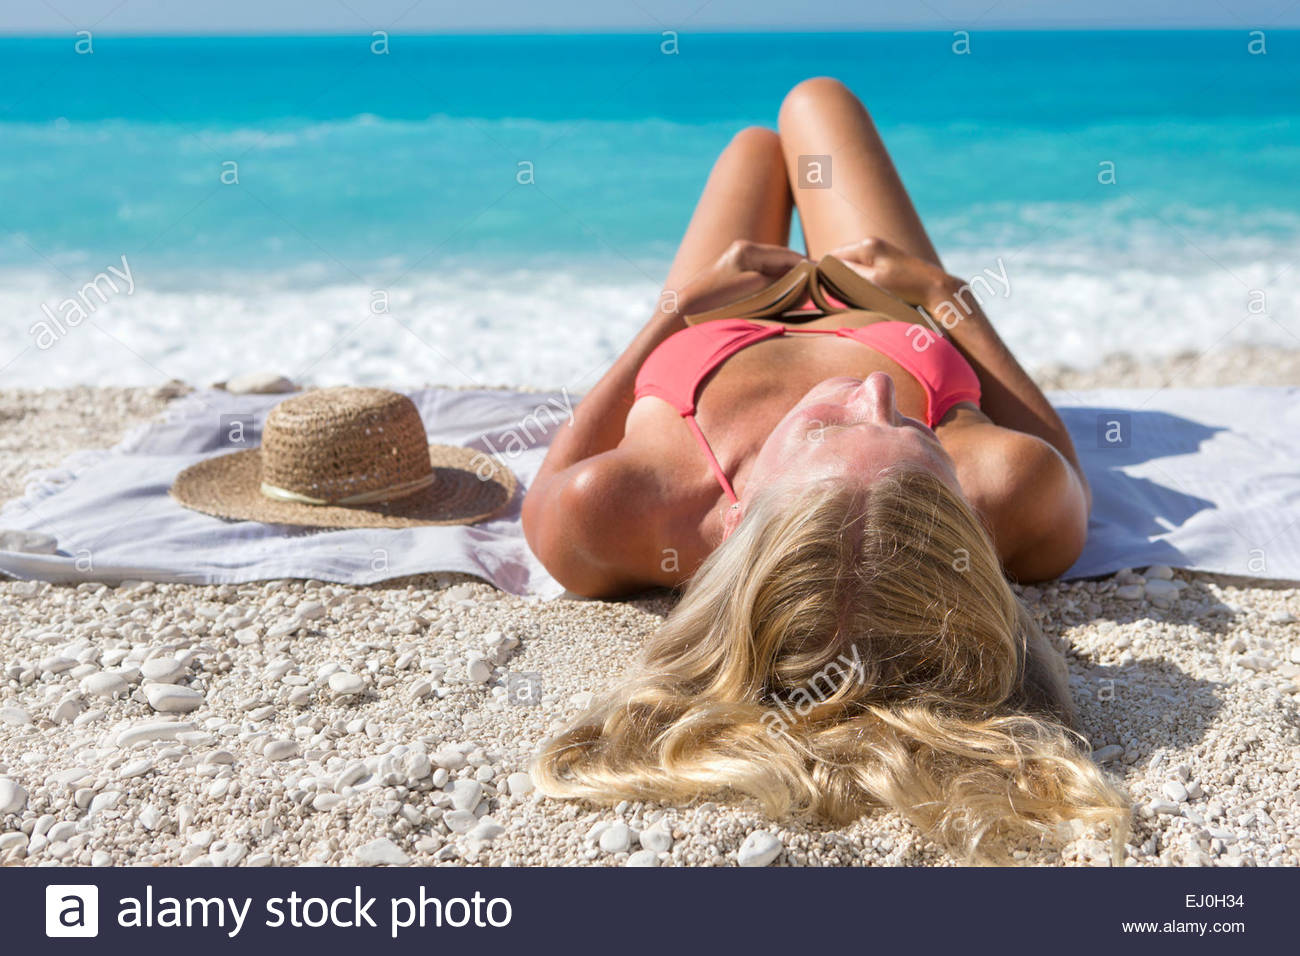 woman, holding book, lying on towel on sunny beach - Stock Image